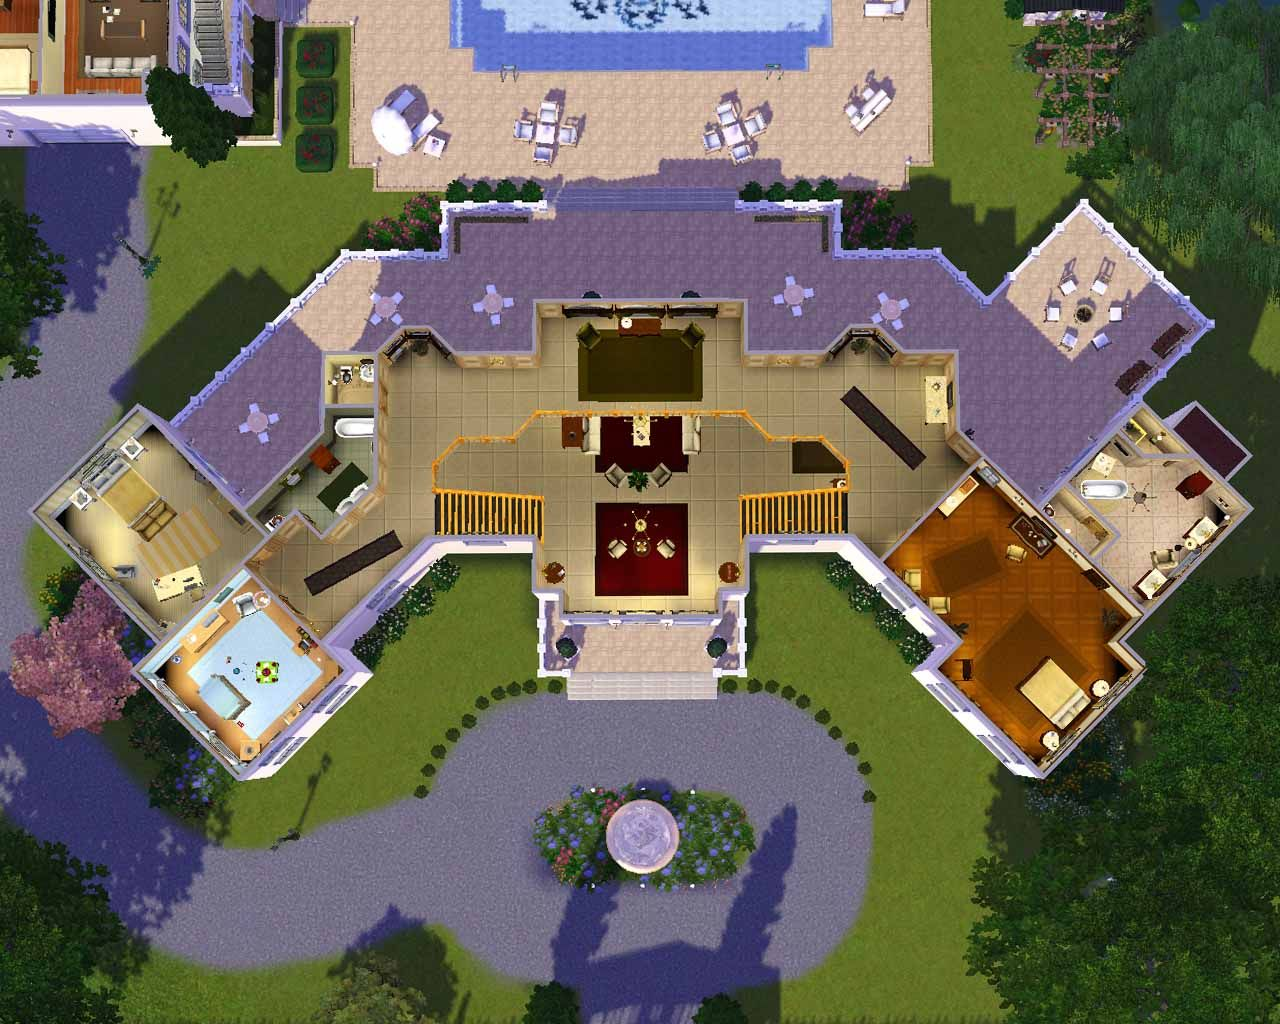 The sims 3 house designs google search idea the sims for Sims 2 house designs floor plans